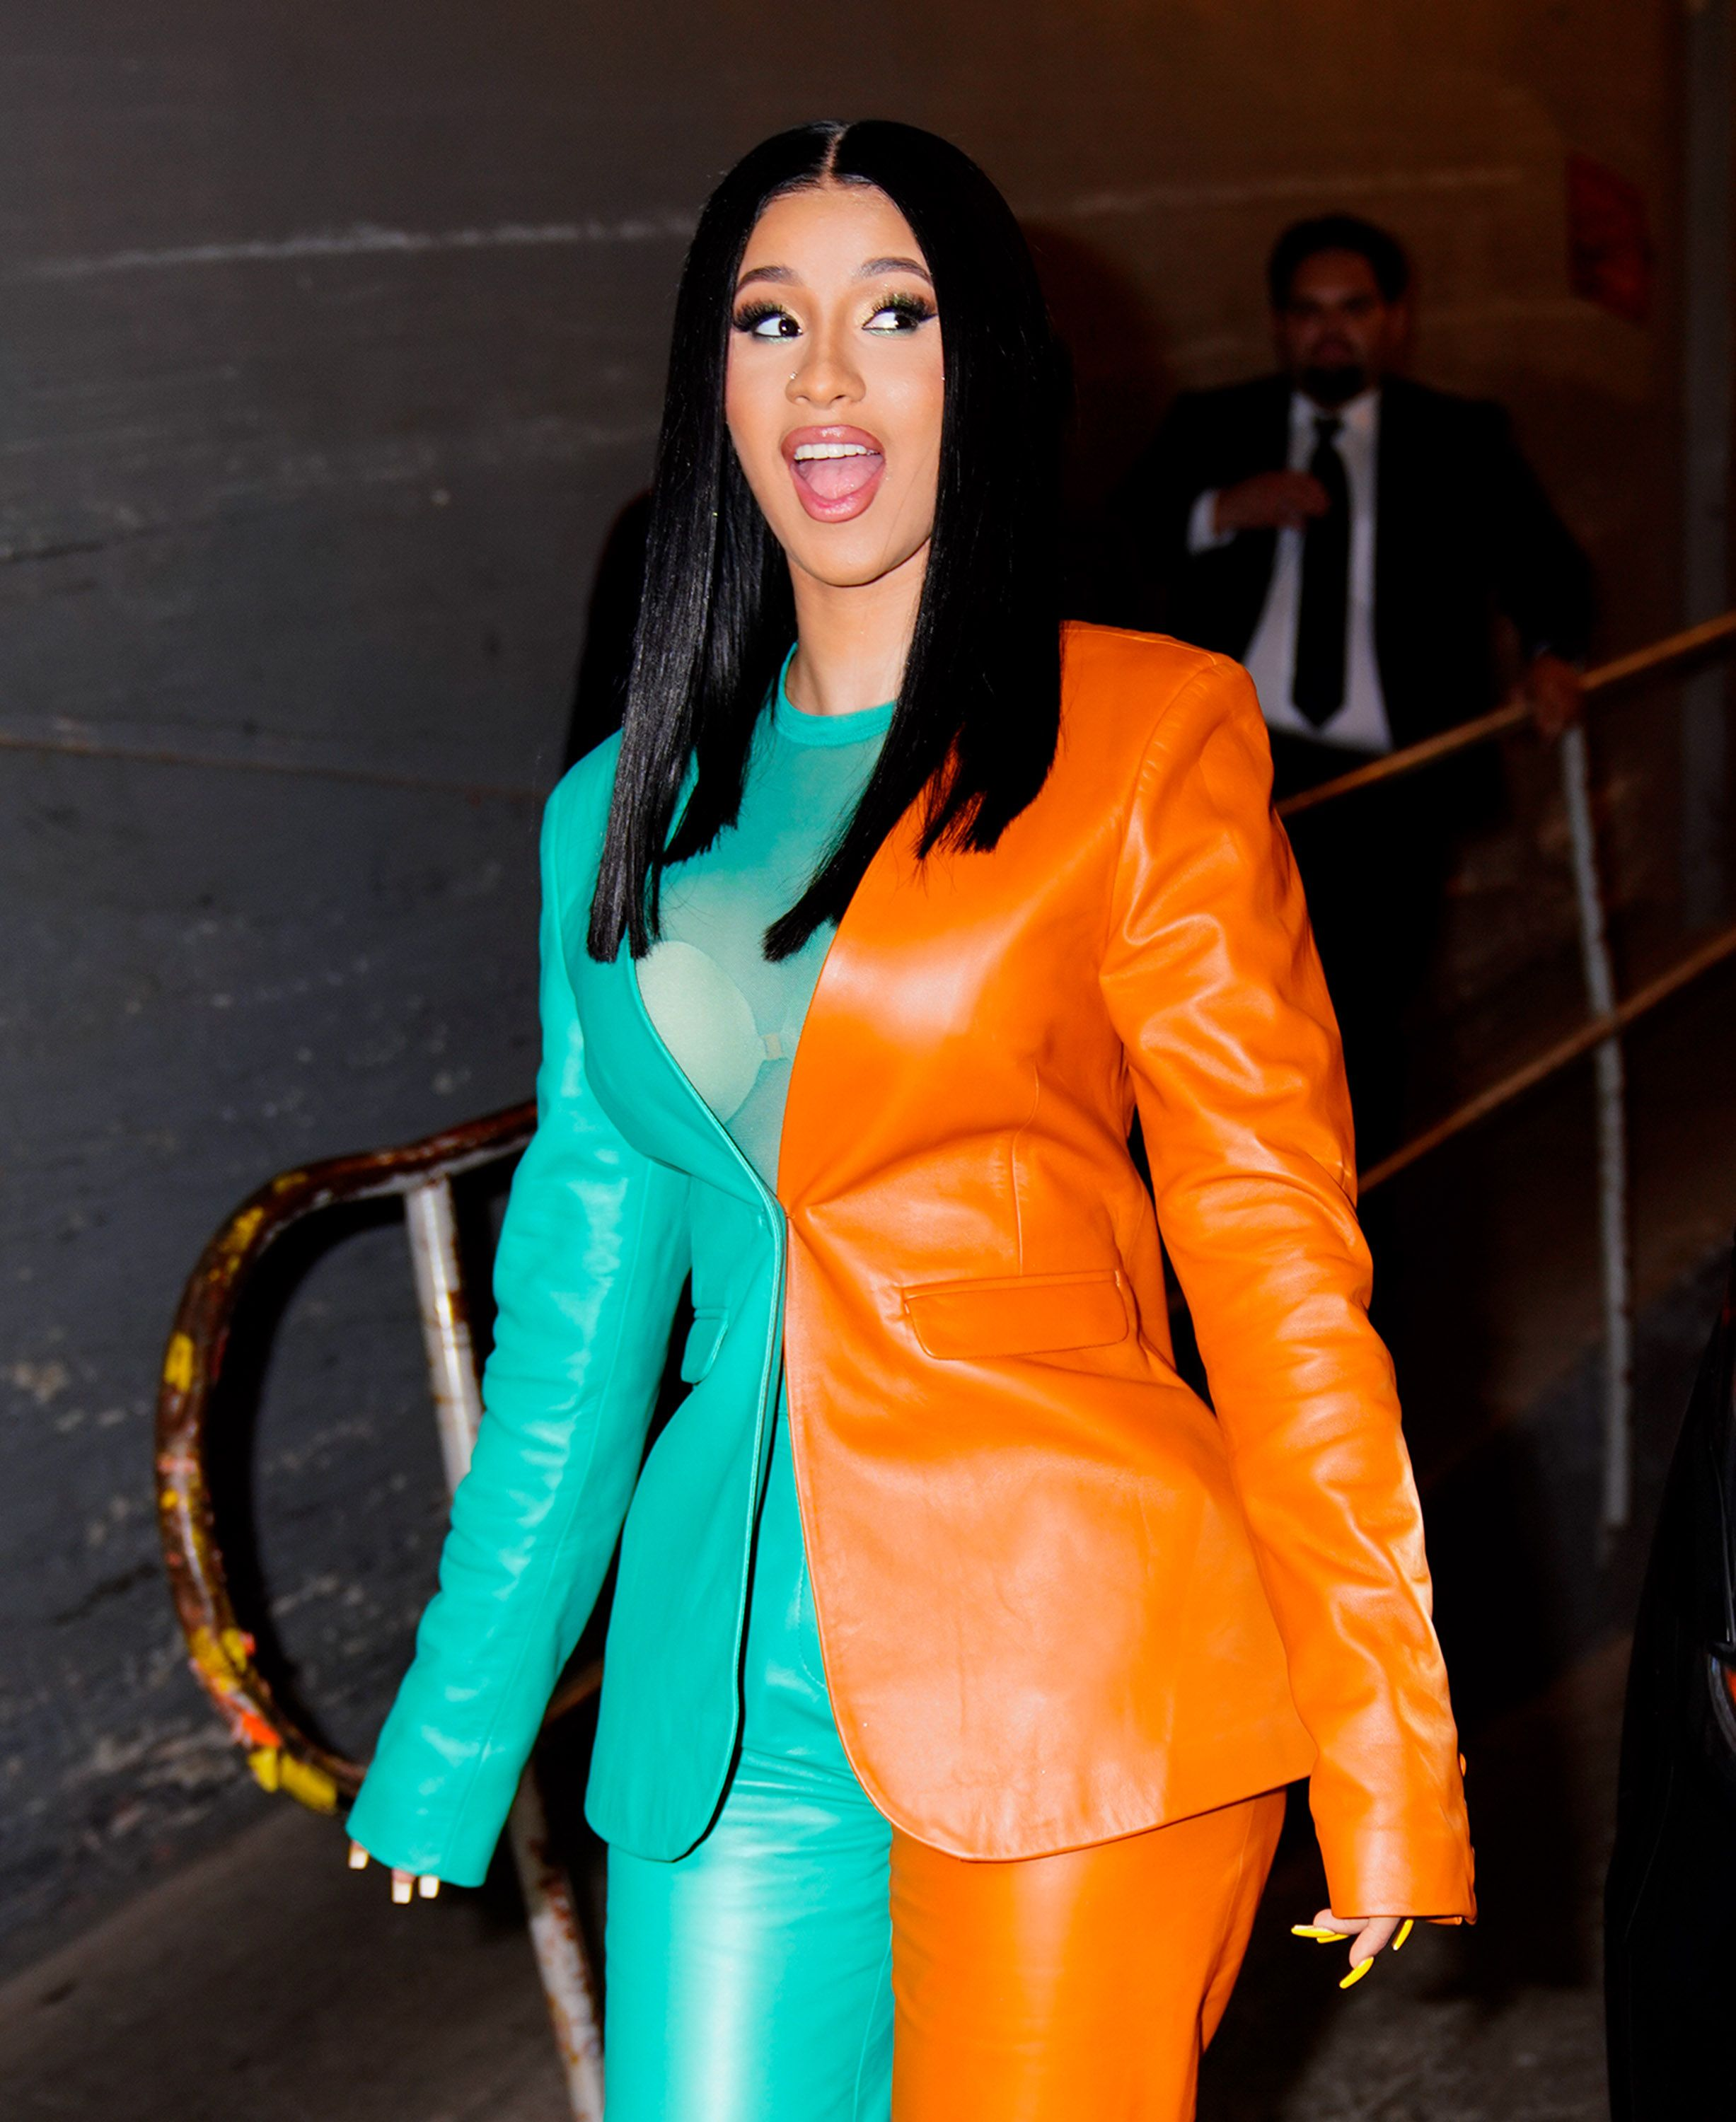 Cardi B at a Vogue event on October 10, 2019 | Photo: Getty Images